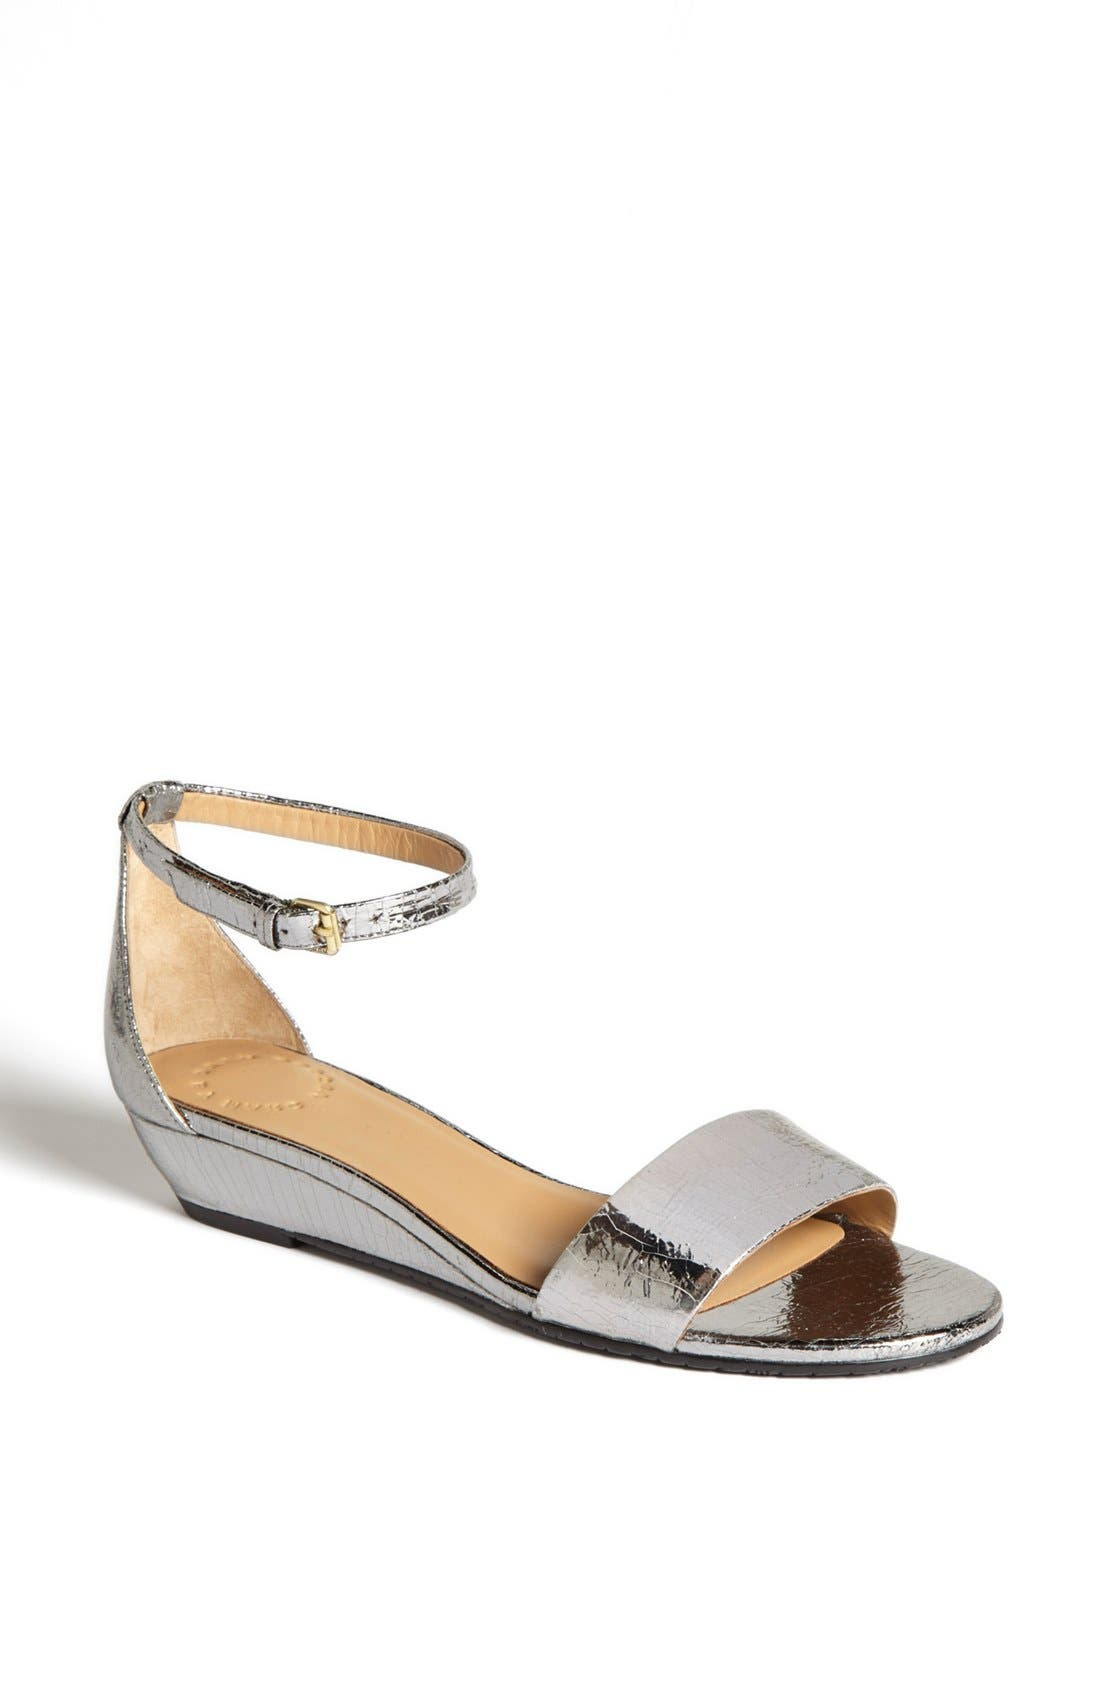 Main Image - MARC BY MARC JACOBS 'Simplicity' Wedge Sandal